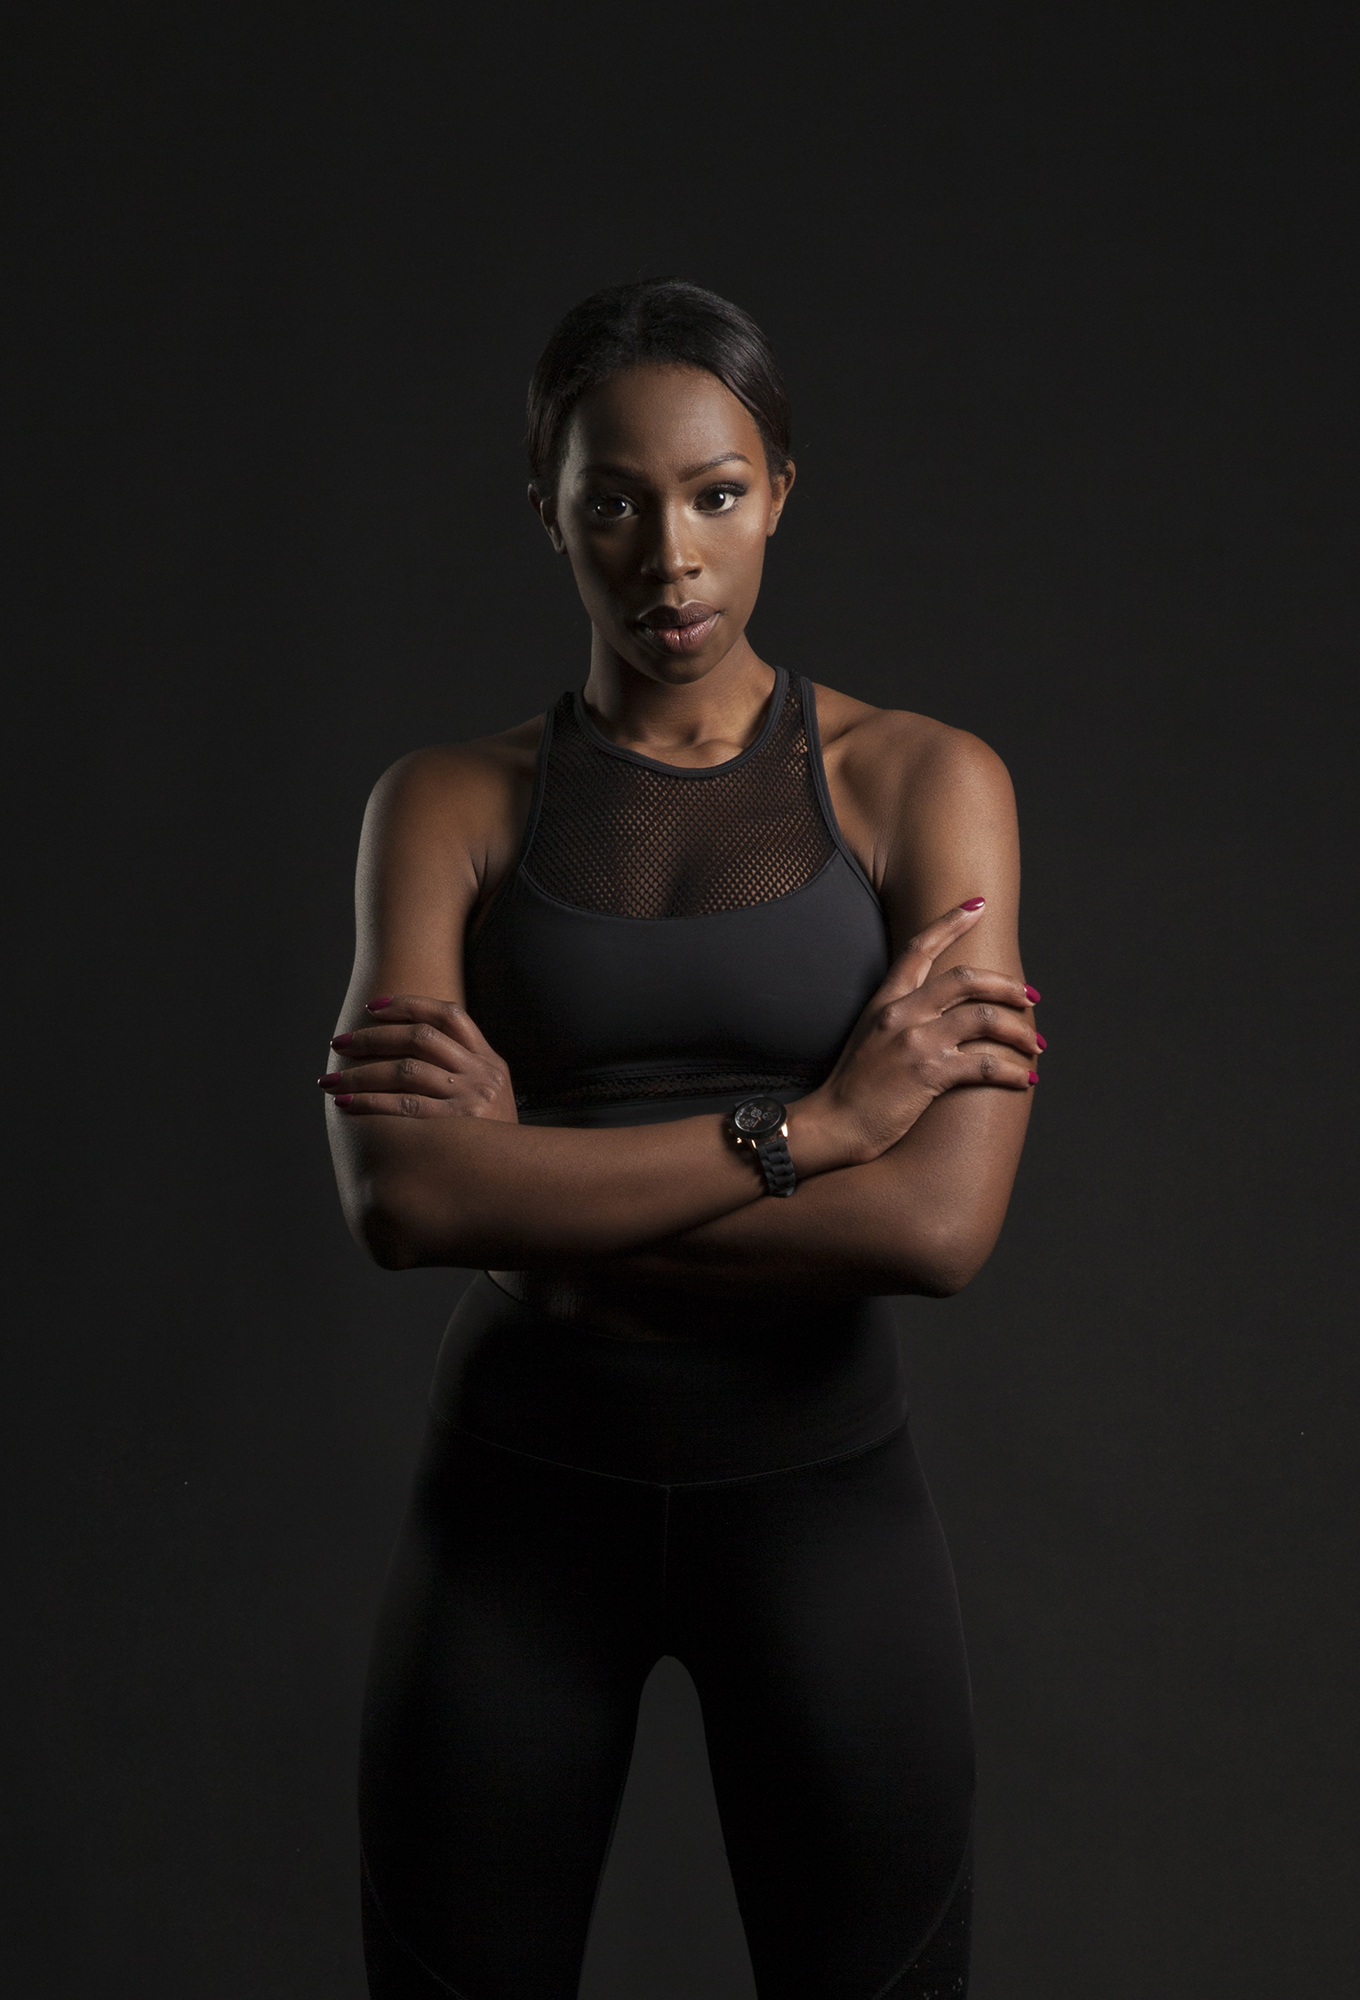 Studio Fitness and Sports Photography